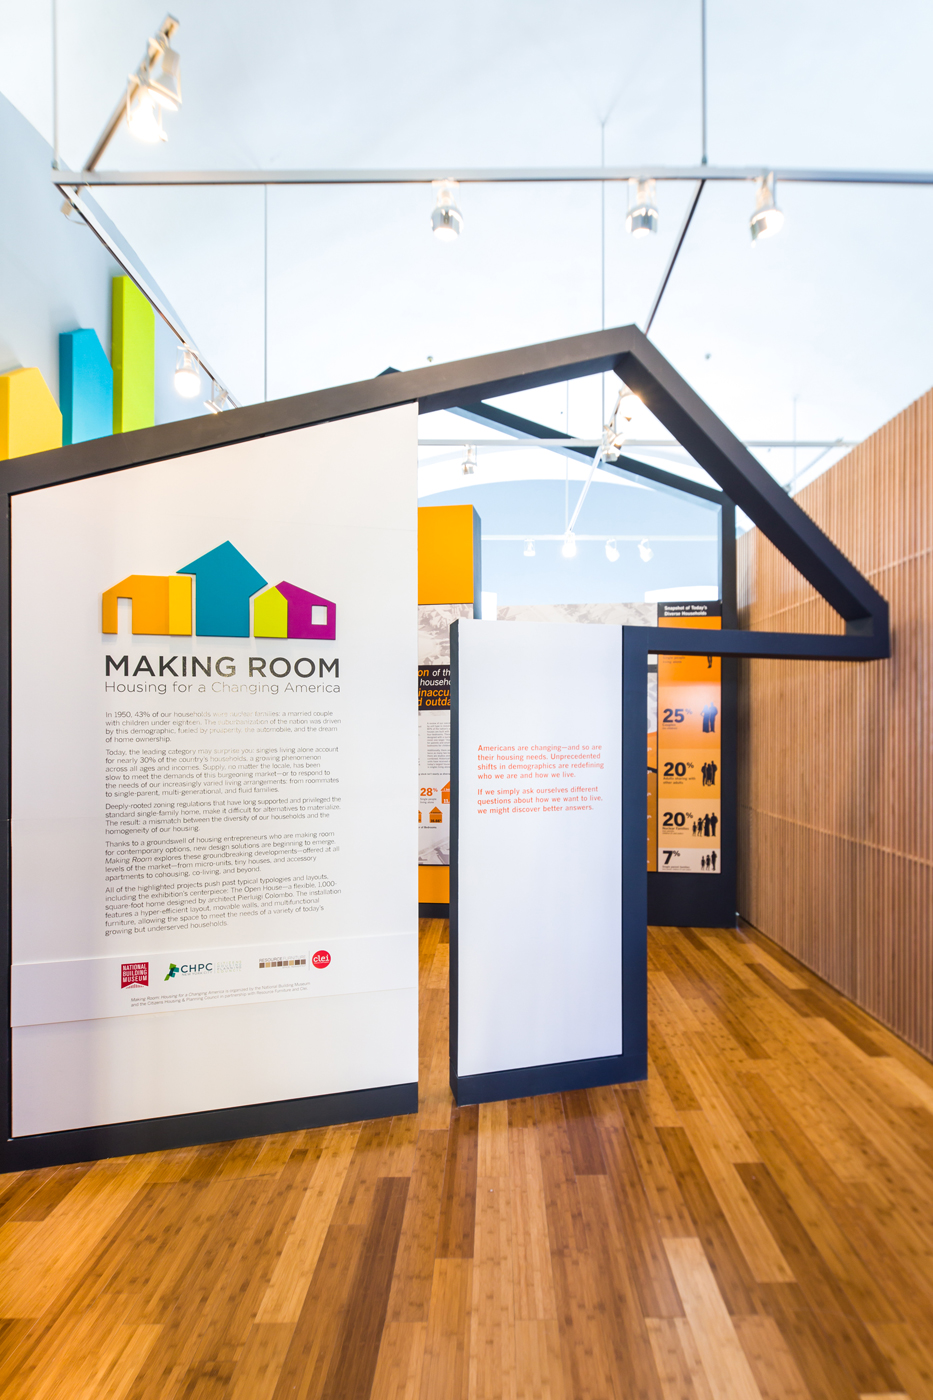 Making Room: Housing for a Changing America. Photo by Yassine El Mansouri via National Building Museum.